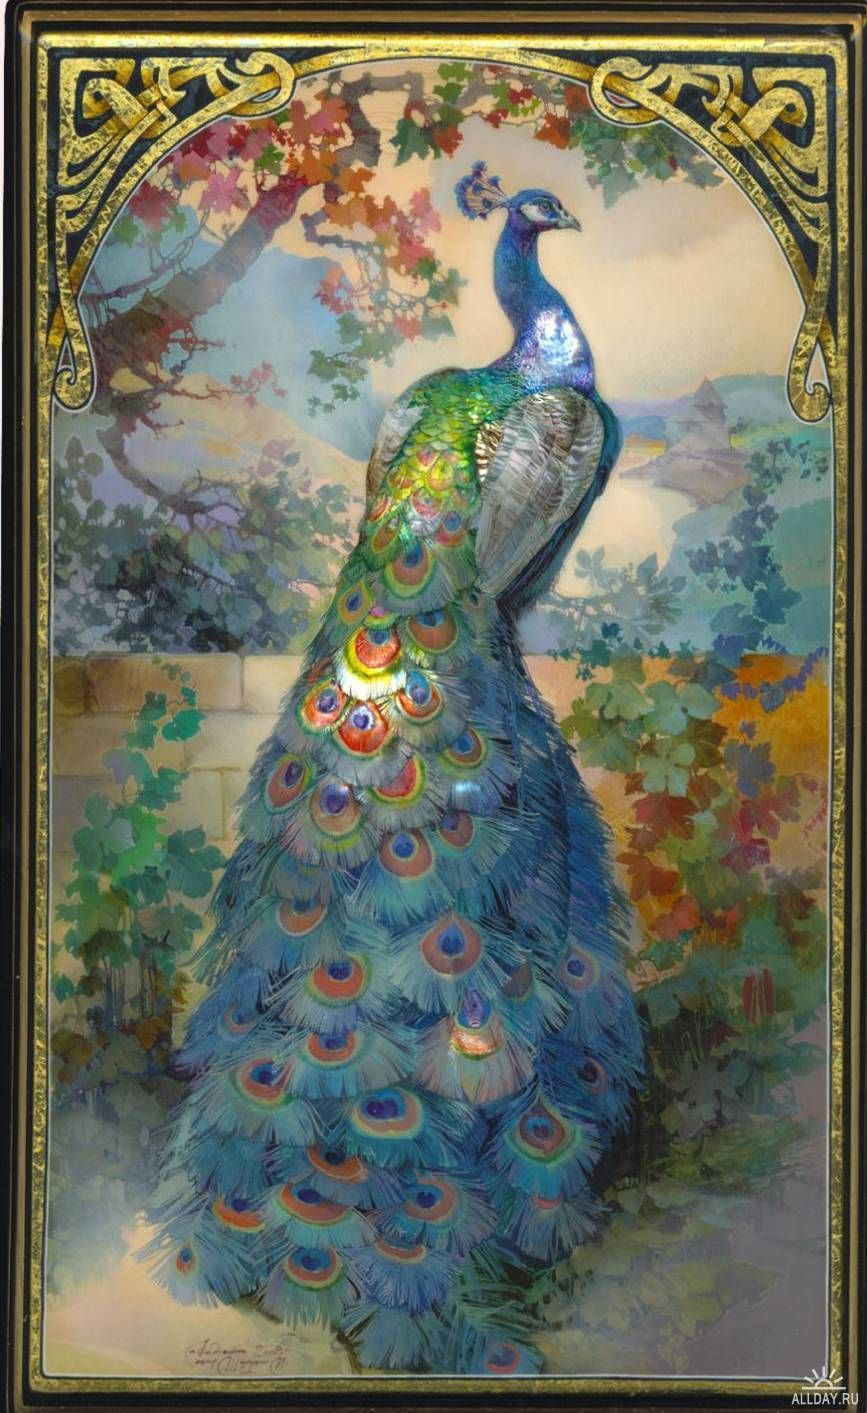 peacock painting | Peacocks Aplenty! | Peacock art, Peacock